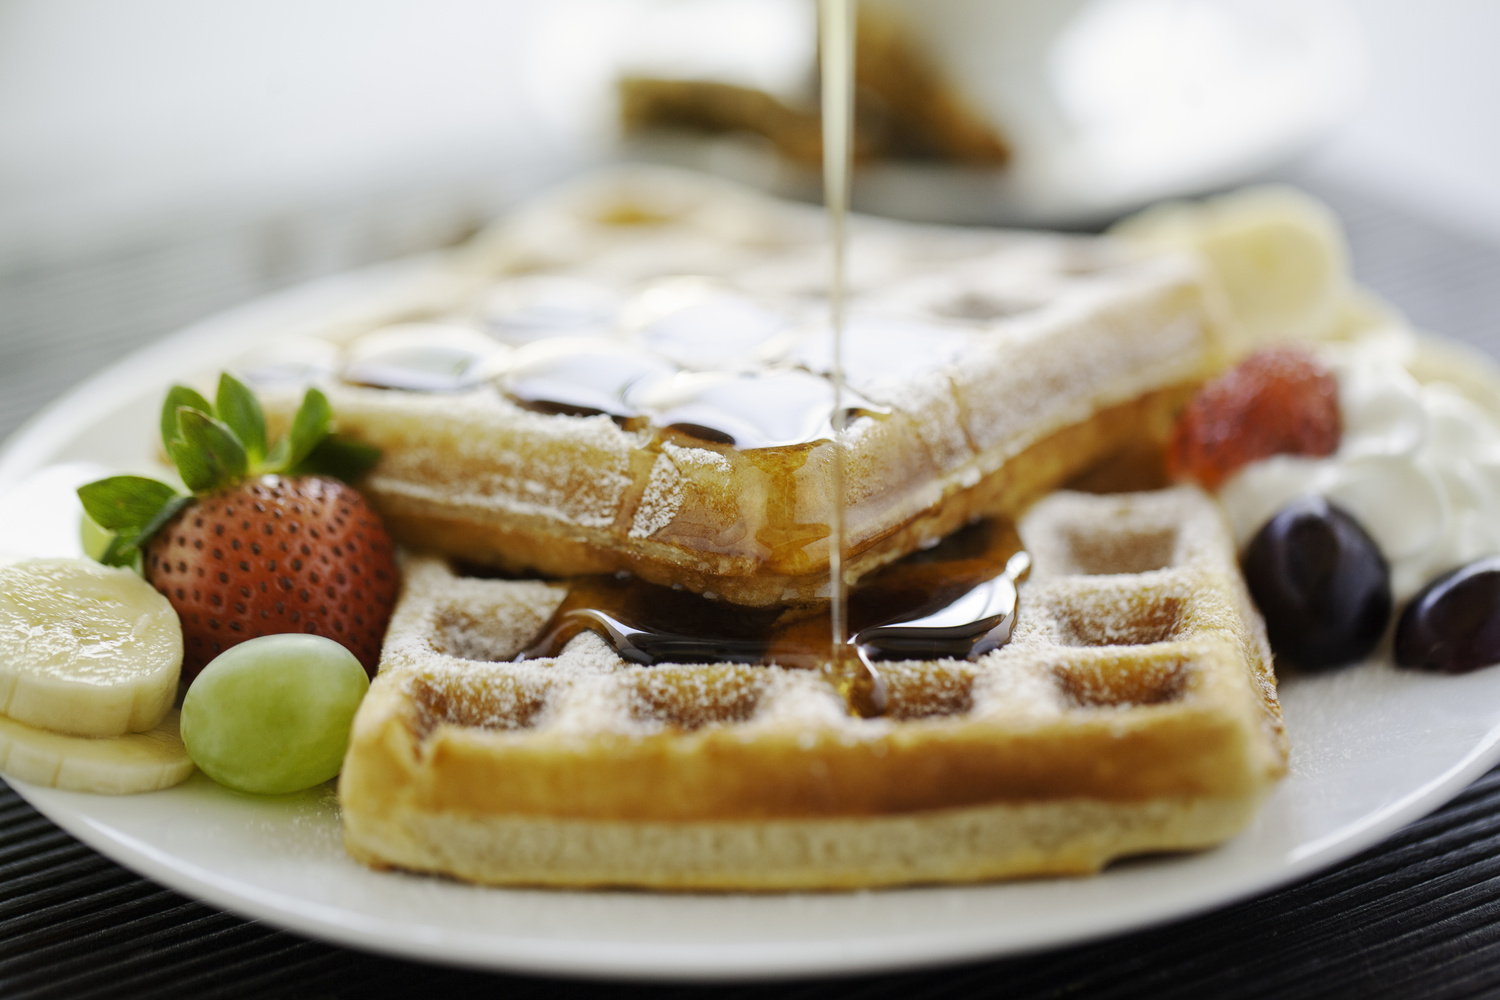 Waffle Breakfast by Dos Imagery